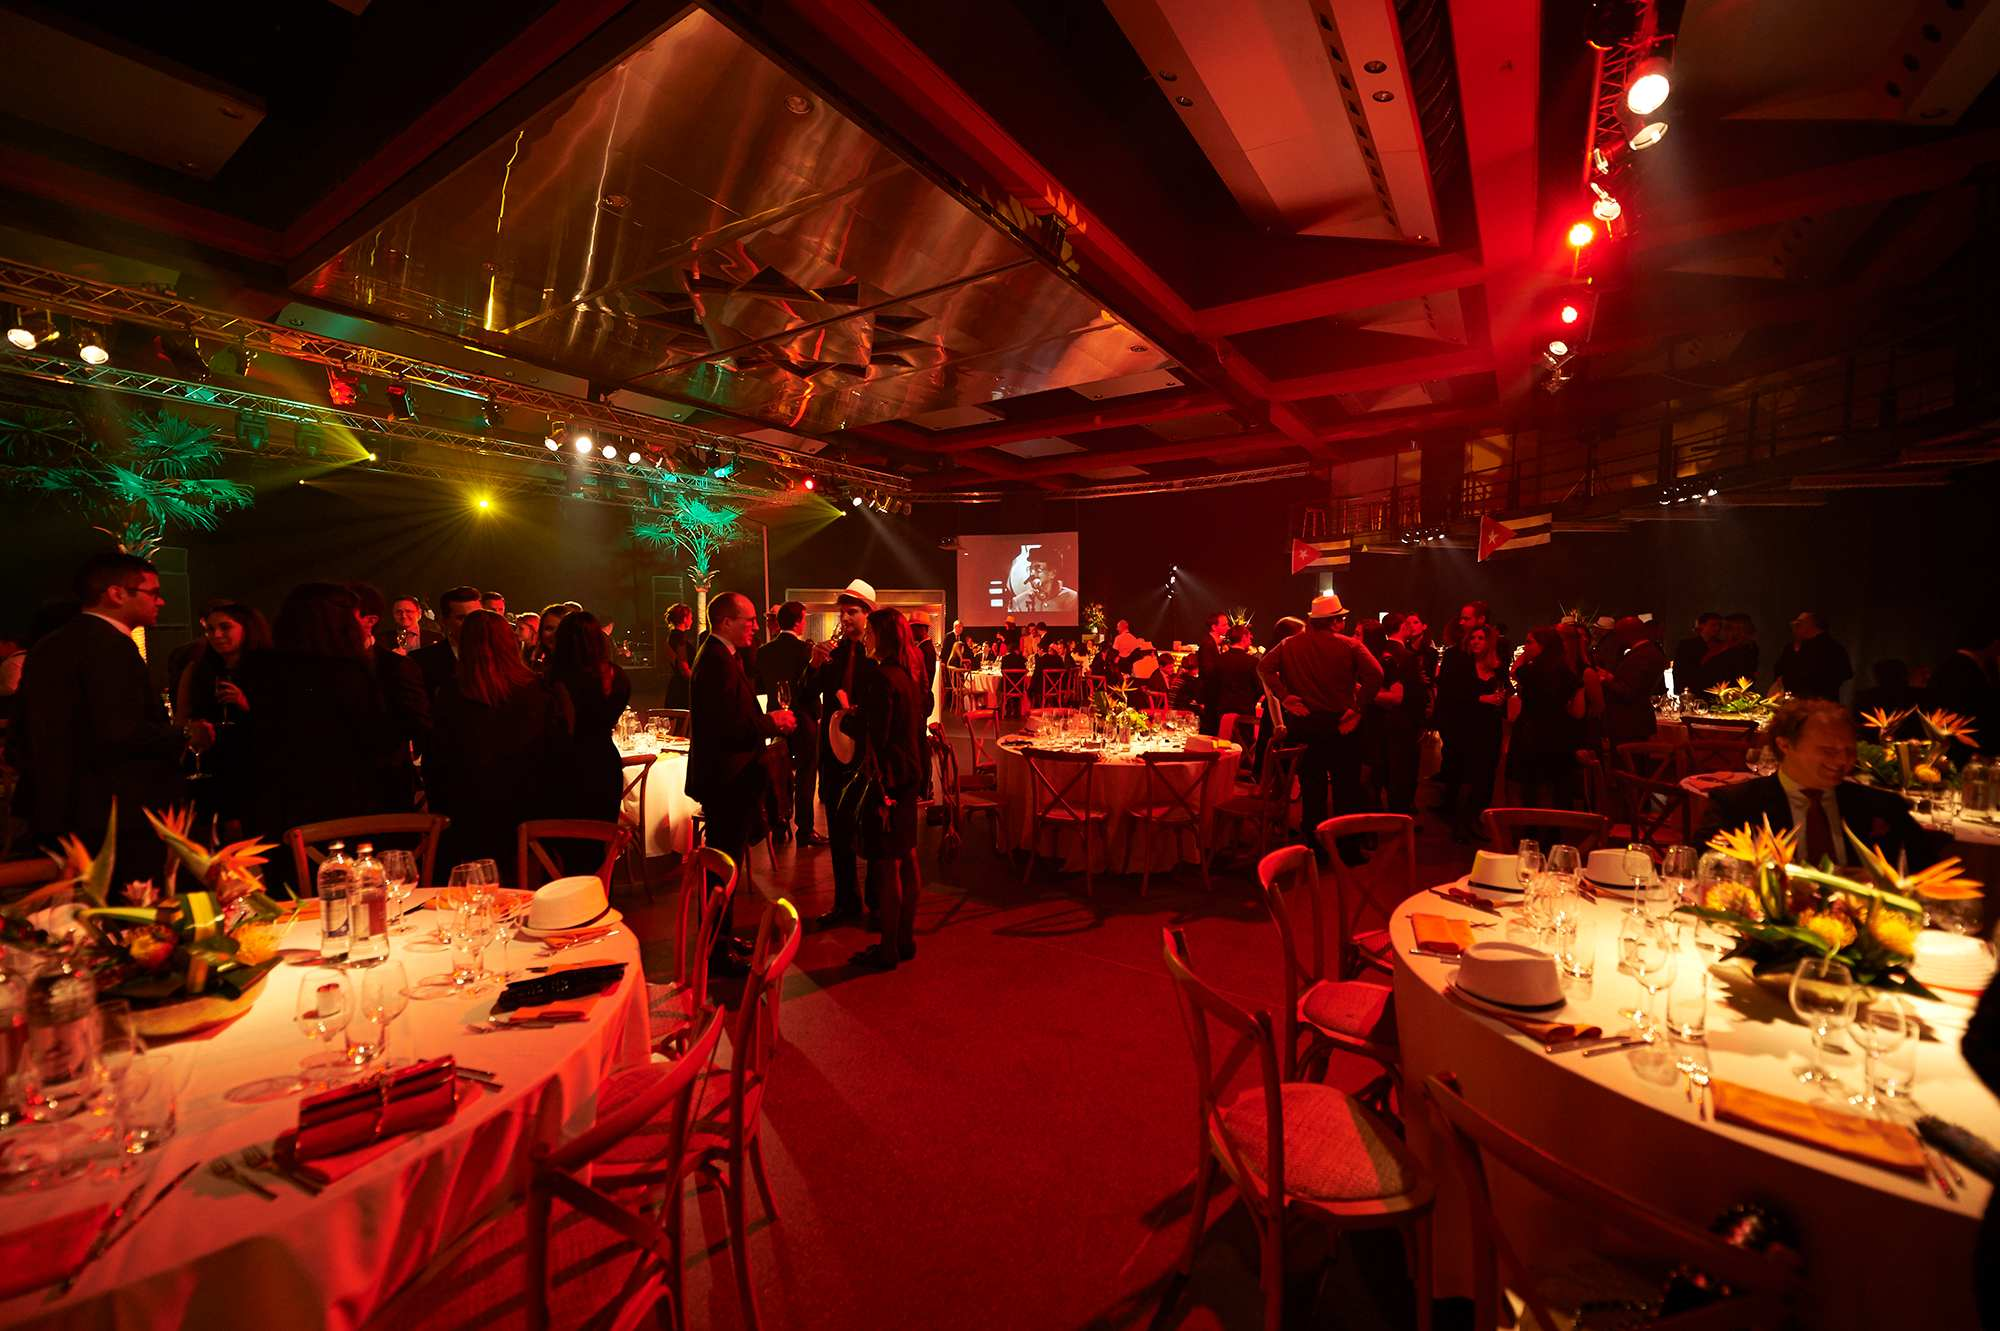 xmas-party-atoz-2016-040-luxembourg-event